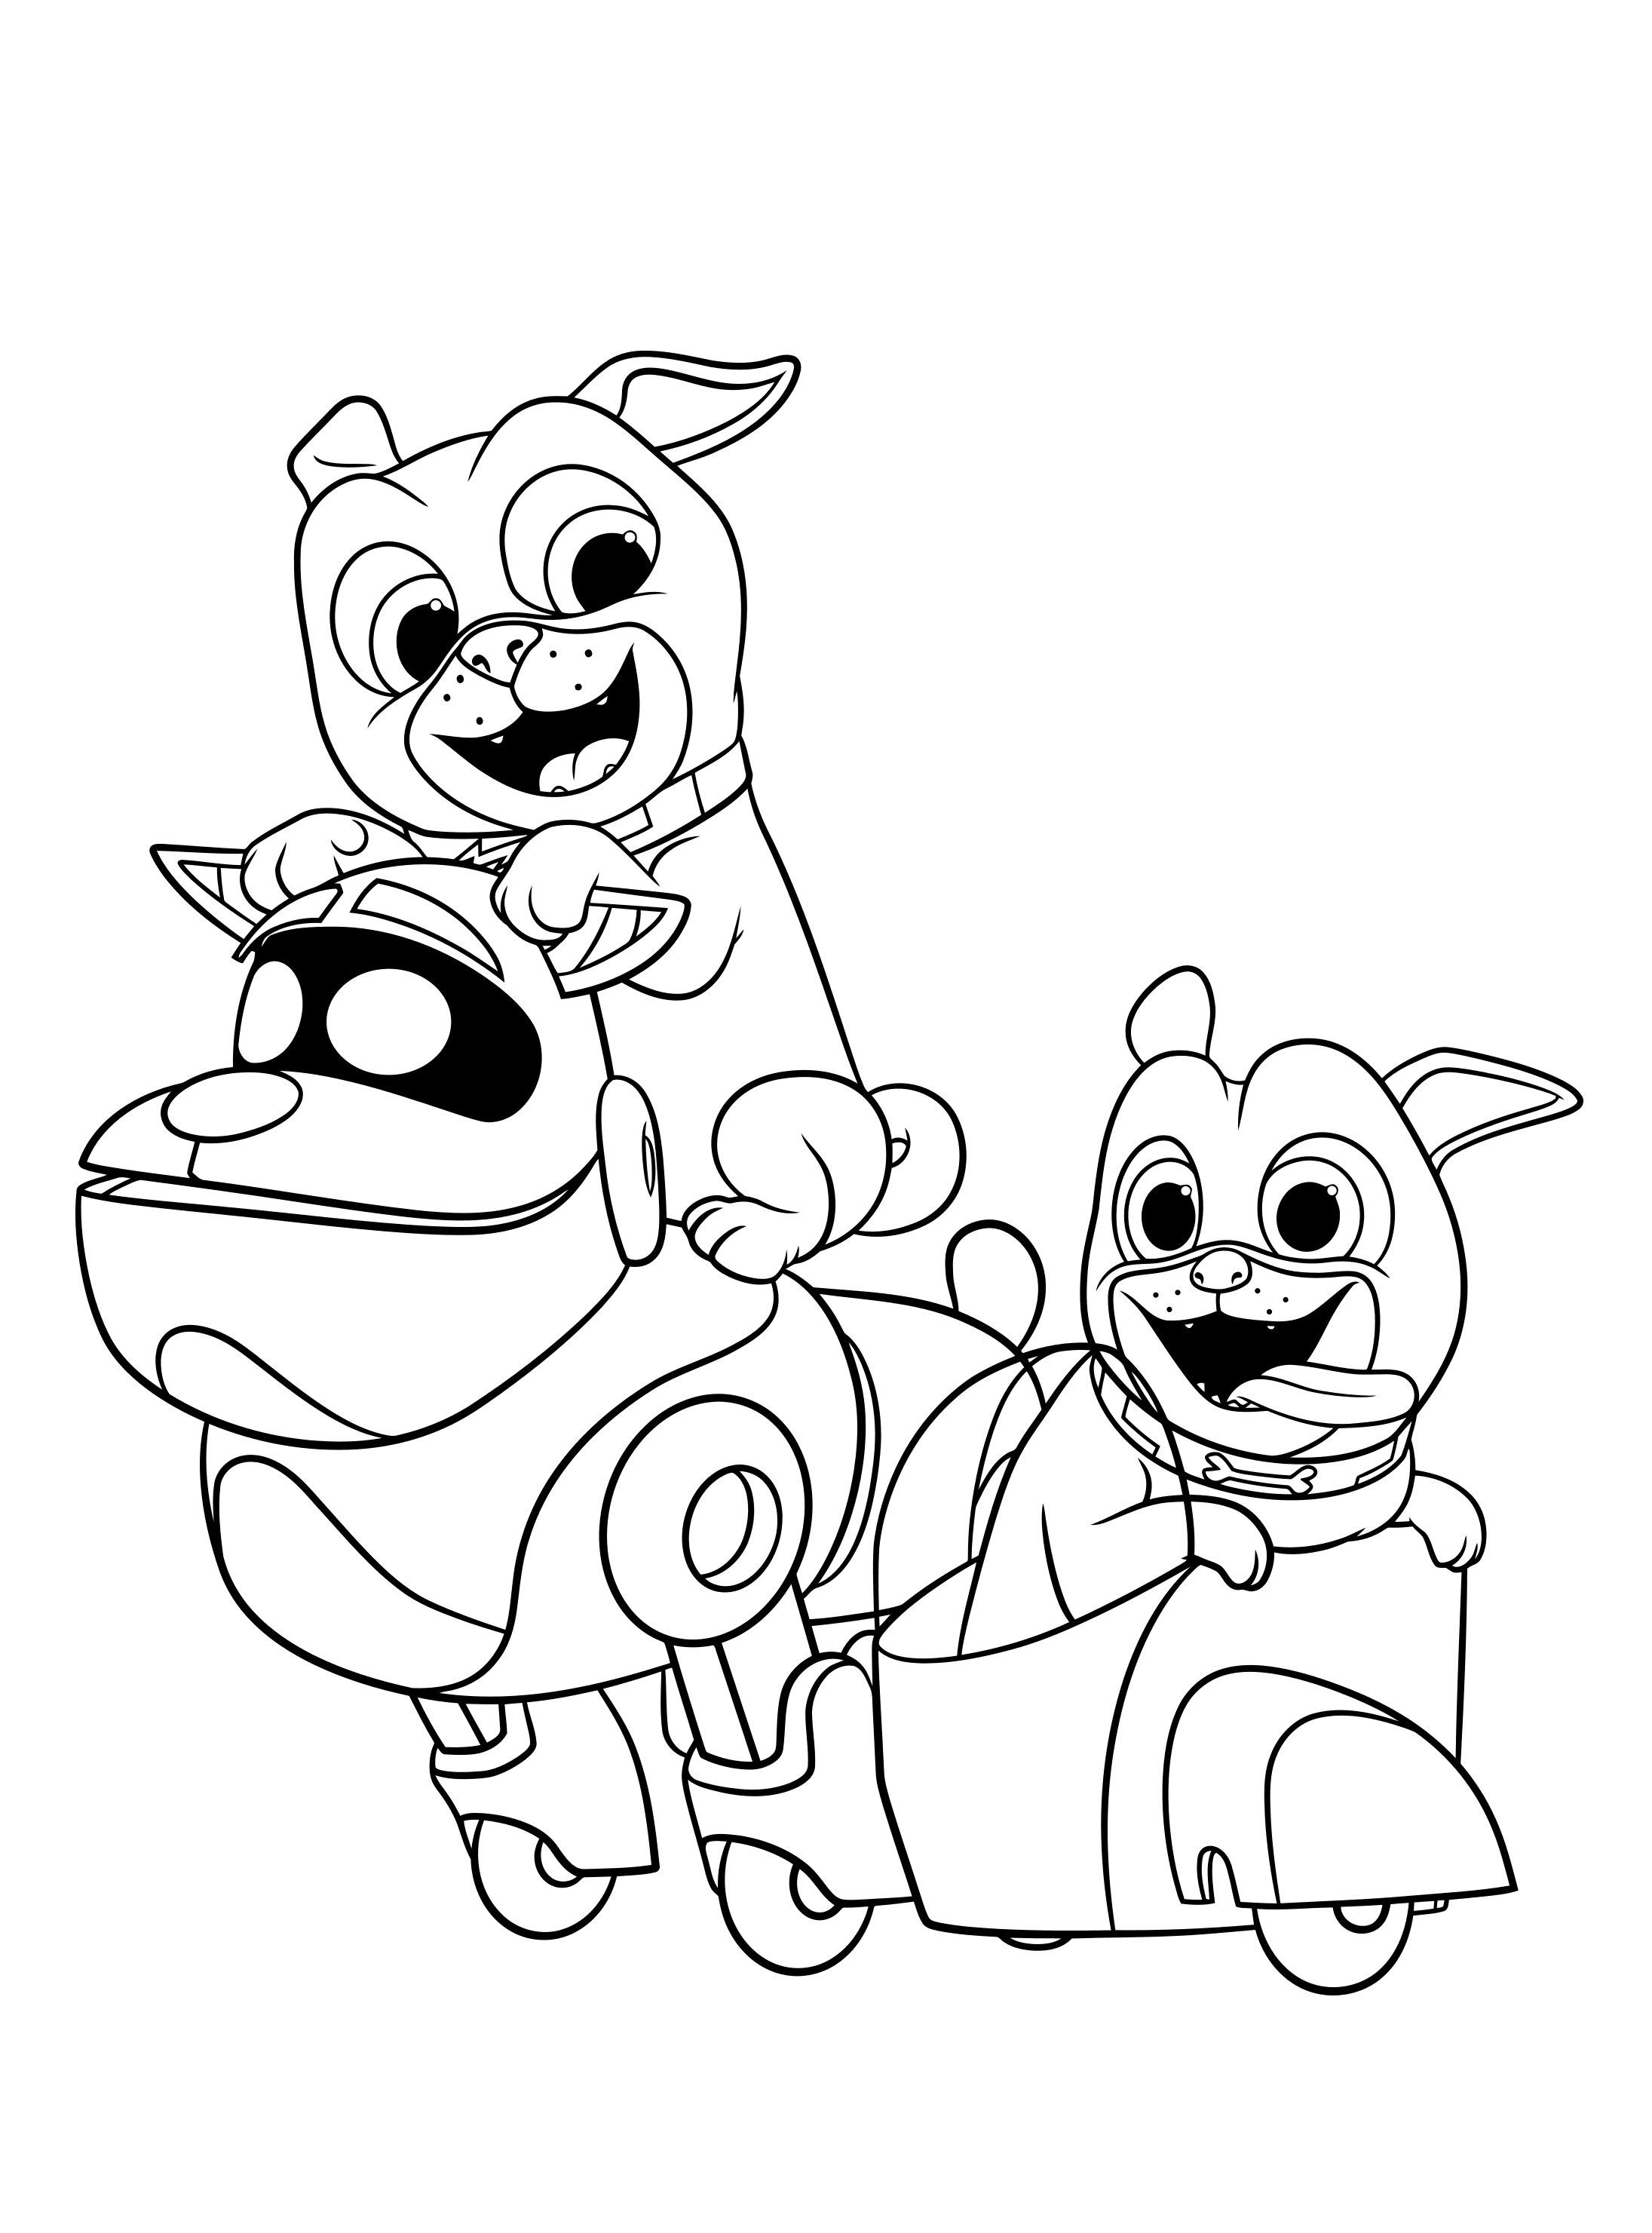 Puppy dog pals coloring pages u through the thousands of photos on